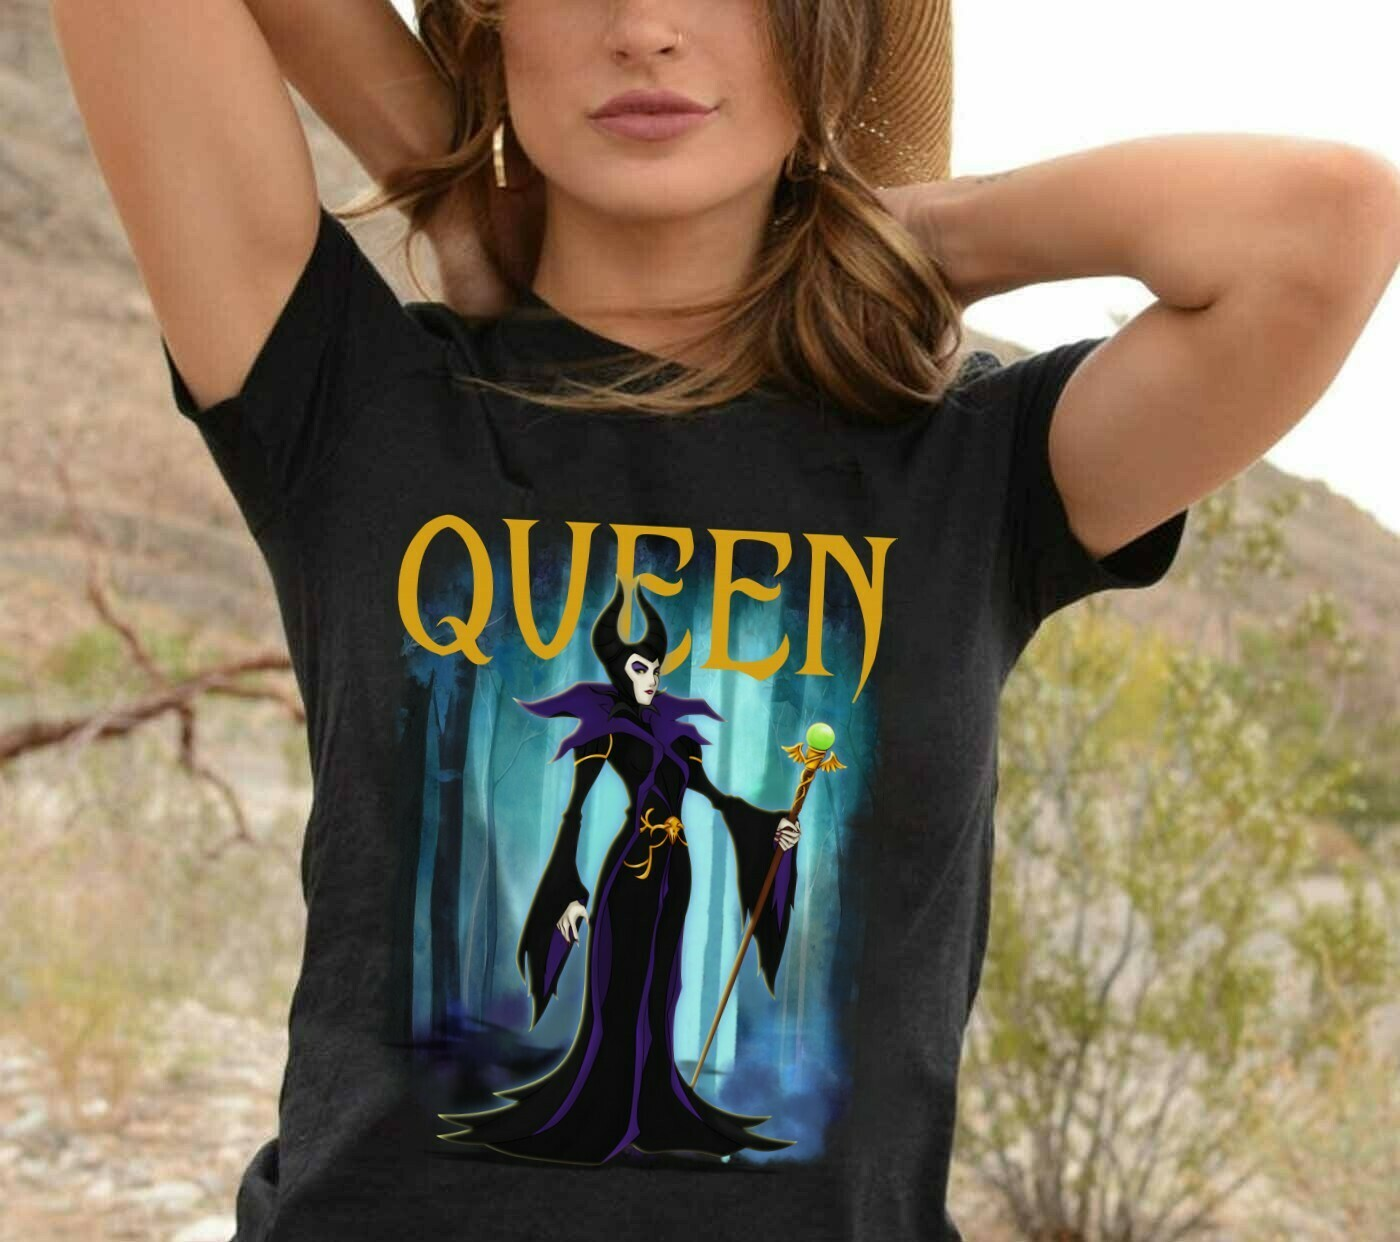 Queen Maleficent Disney Villains Bad Girls Have More Fun Walt Disney World Disneyland Park Family Vacation T Shirt Long Sleeve Sweatshirt Hoodie Jolly Family Gifts